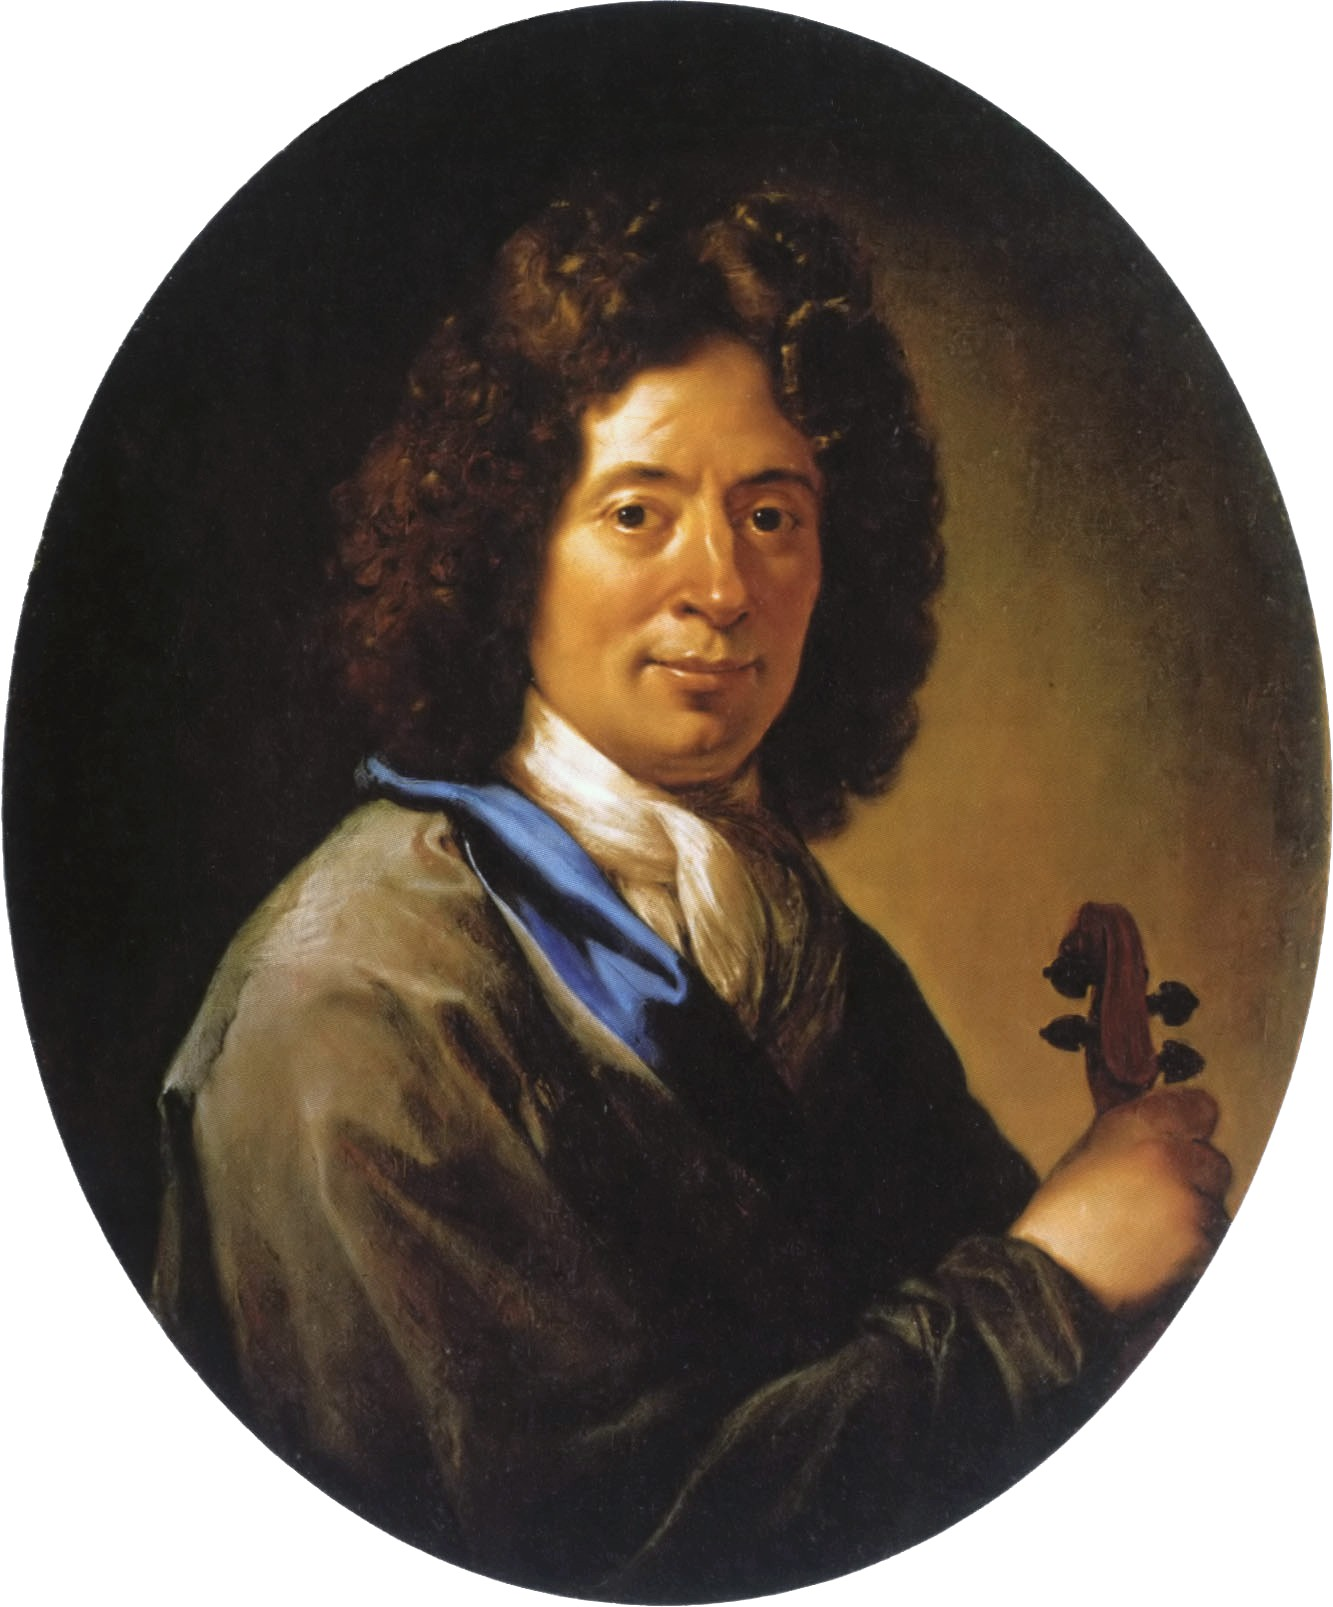 comparison musical styles vivaldi and corelli Vivaldi achieved fame in venice by emulating the style of archangelo corelli's famous opus 6, a collection of twelve violin concertos (including the baroque war-horse #8, the christmas concerto) that were not unlike the several collections that vivaldi published.